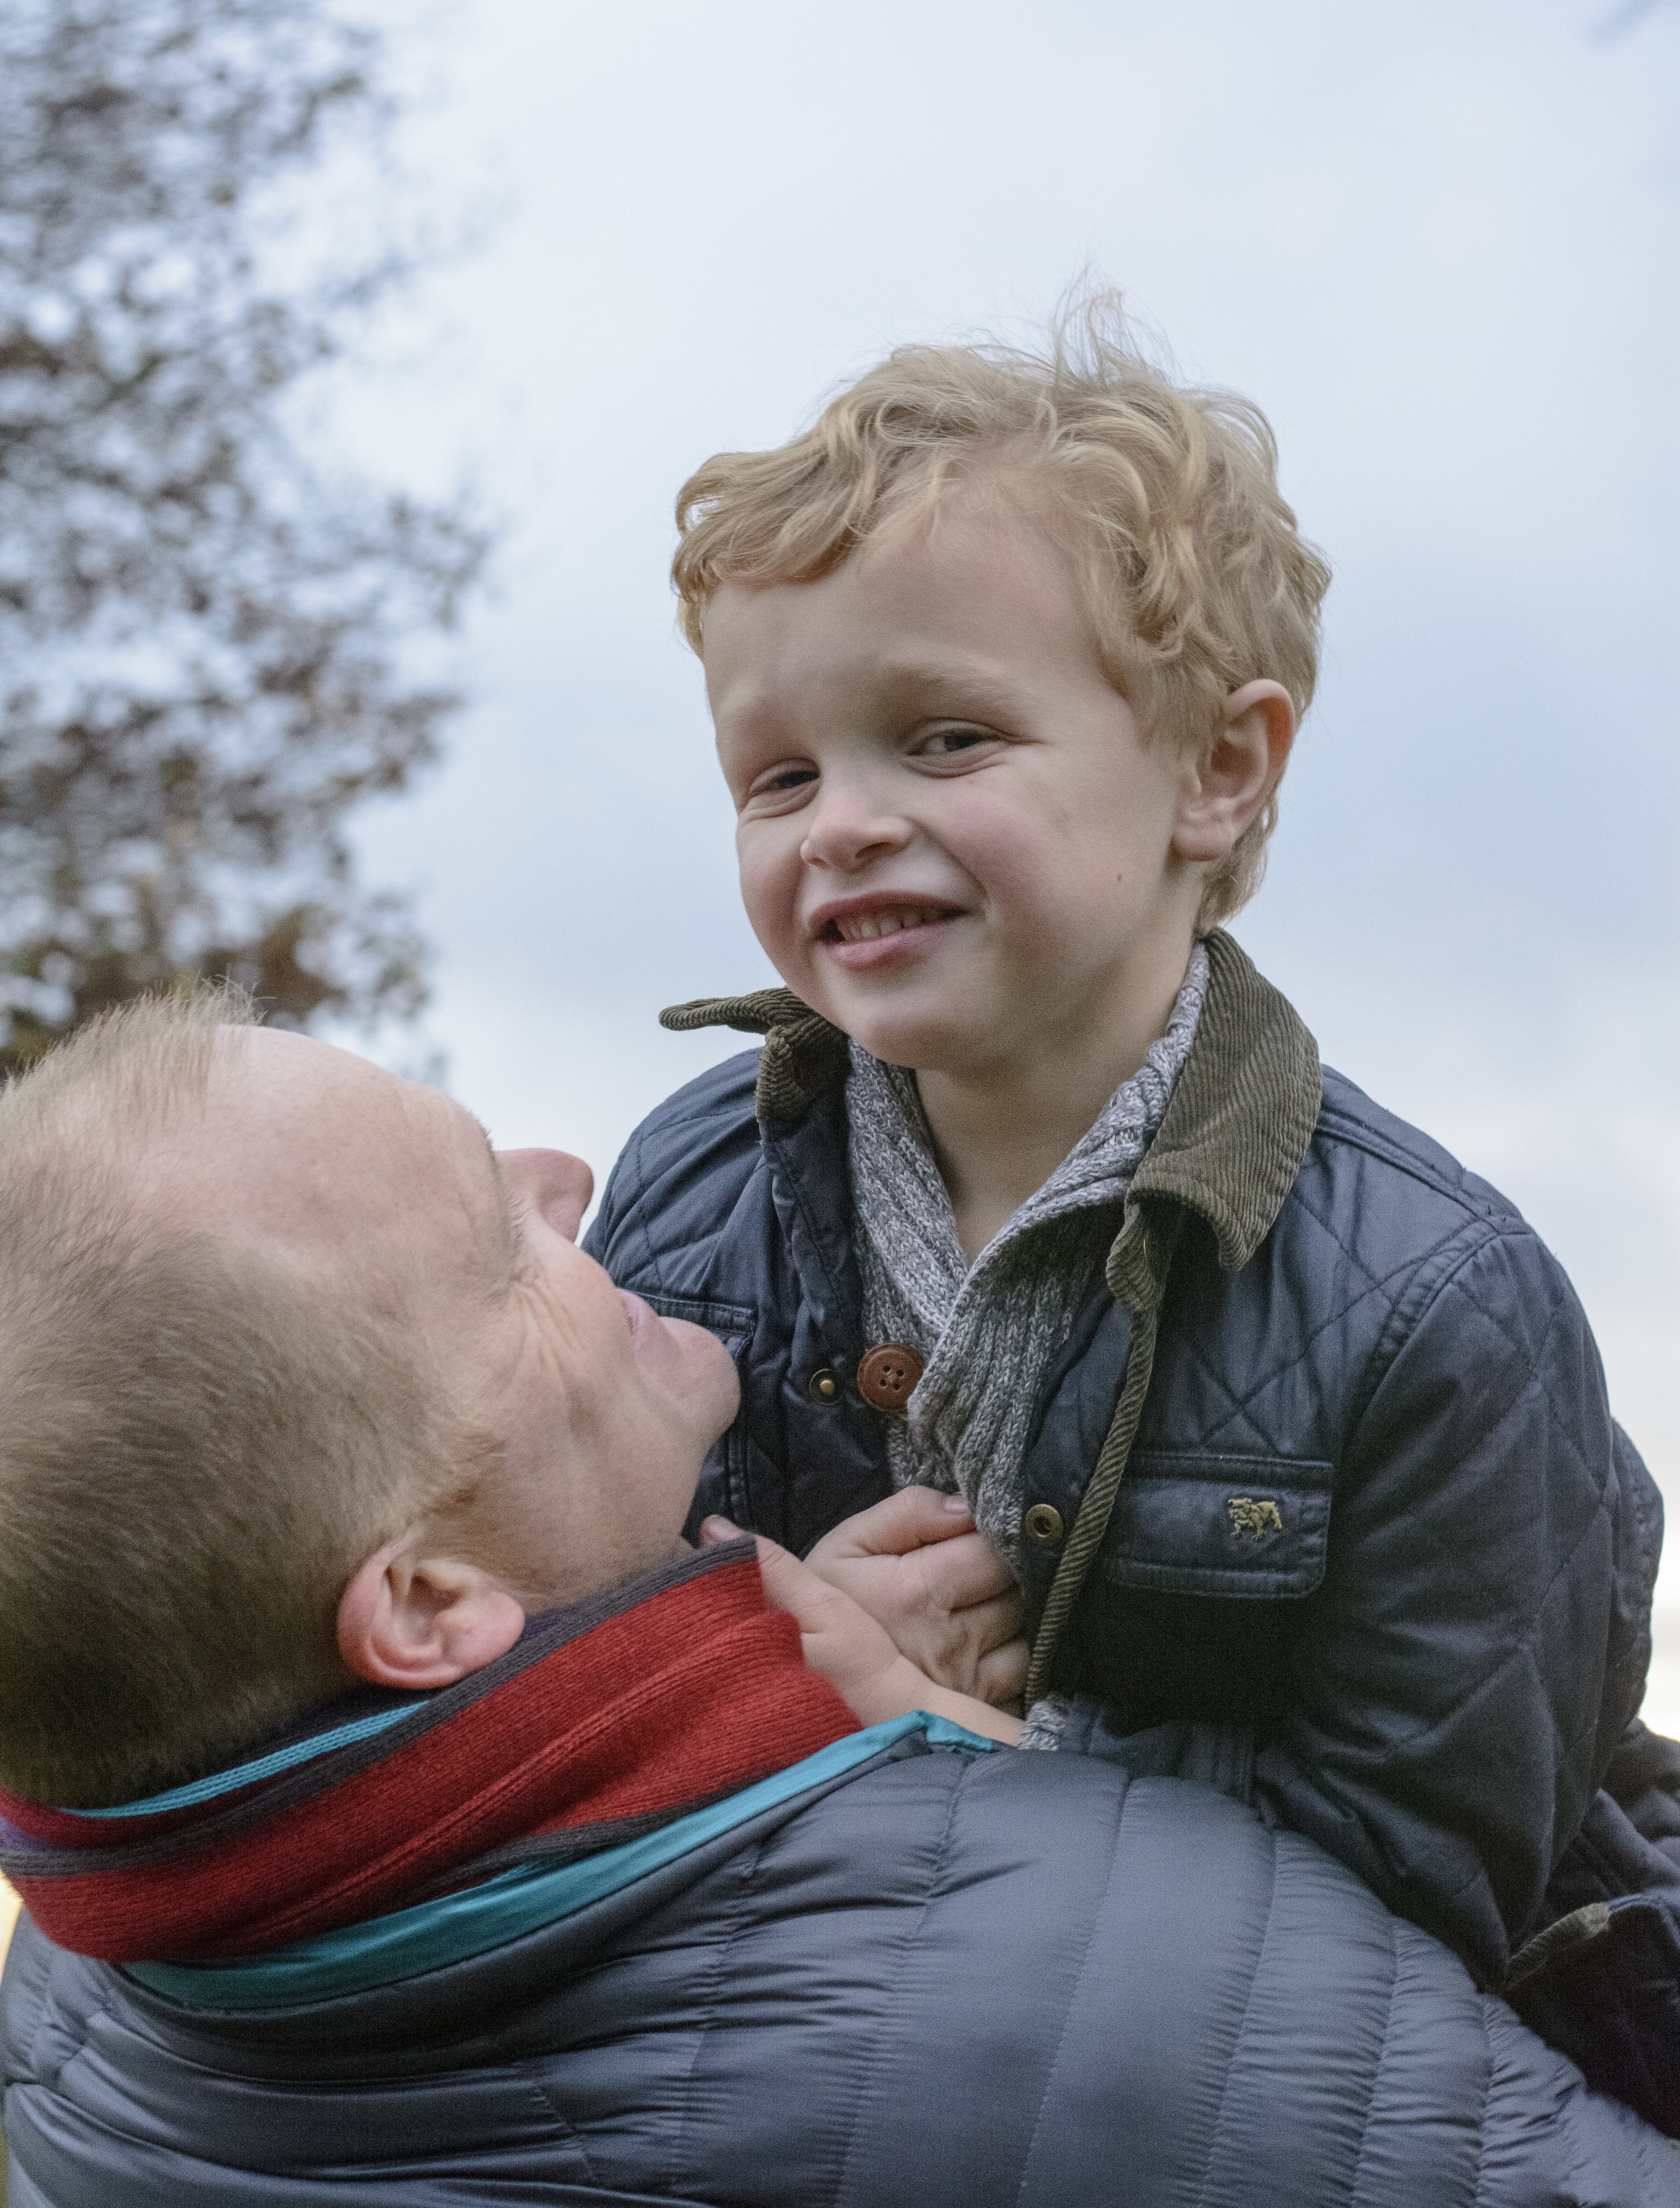 sally-hornung-photpgraphy-father-son-2.jpg